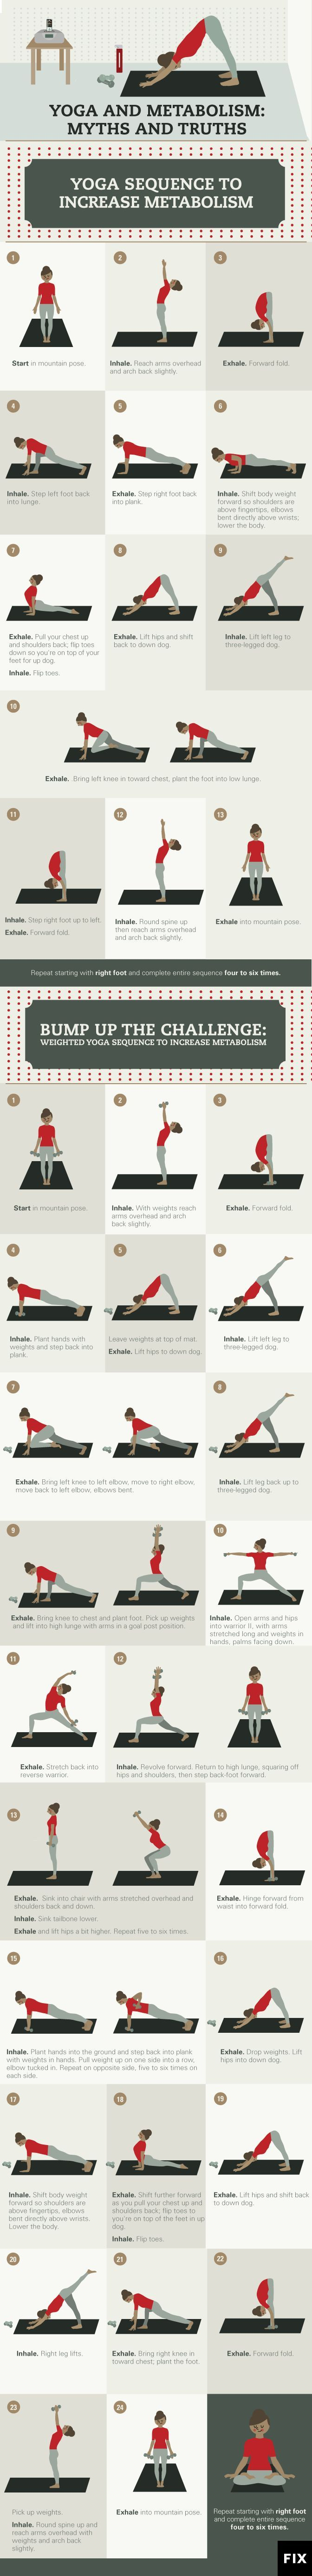 Find out which yoga poses will boost your metabolism throughout the day! #Yoga www.fix.com/...